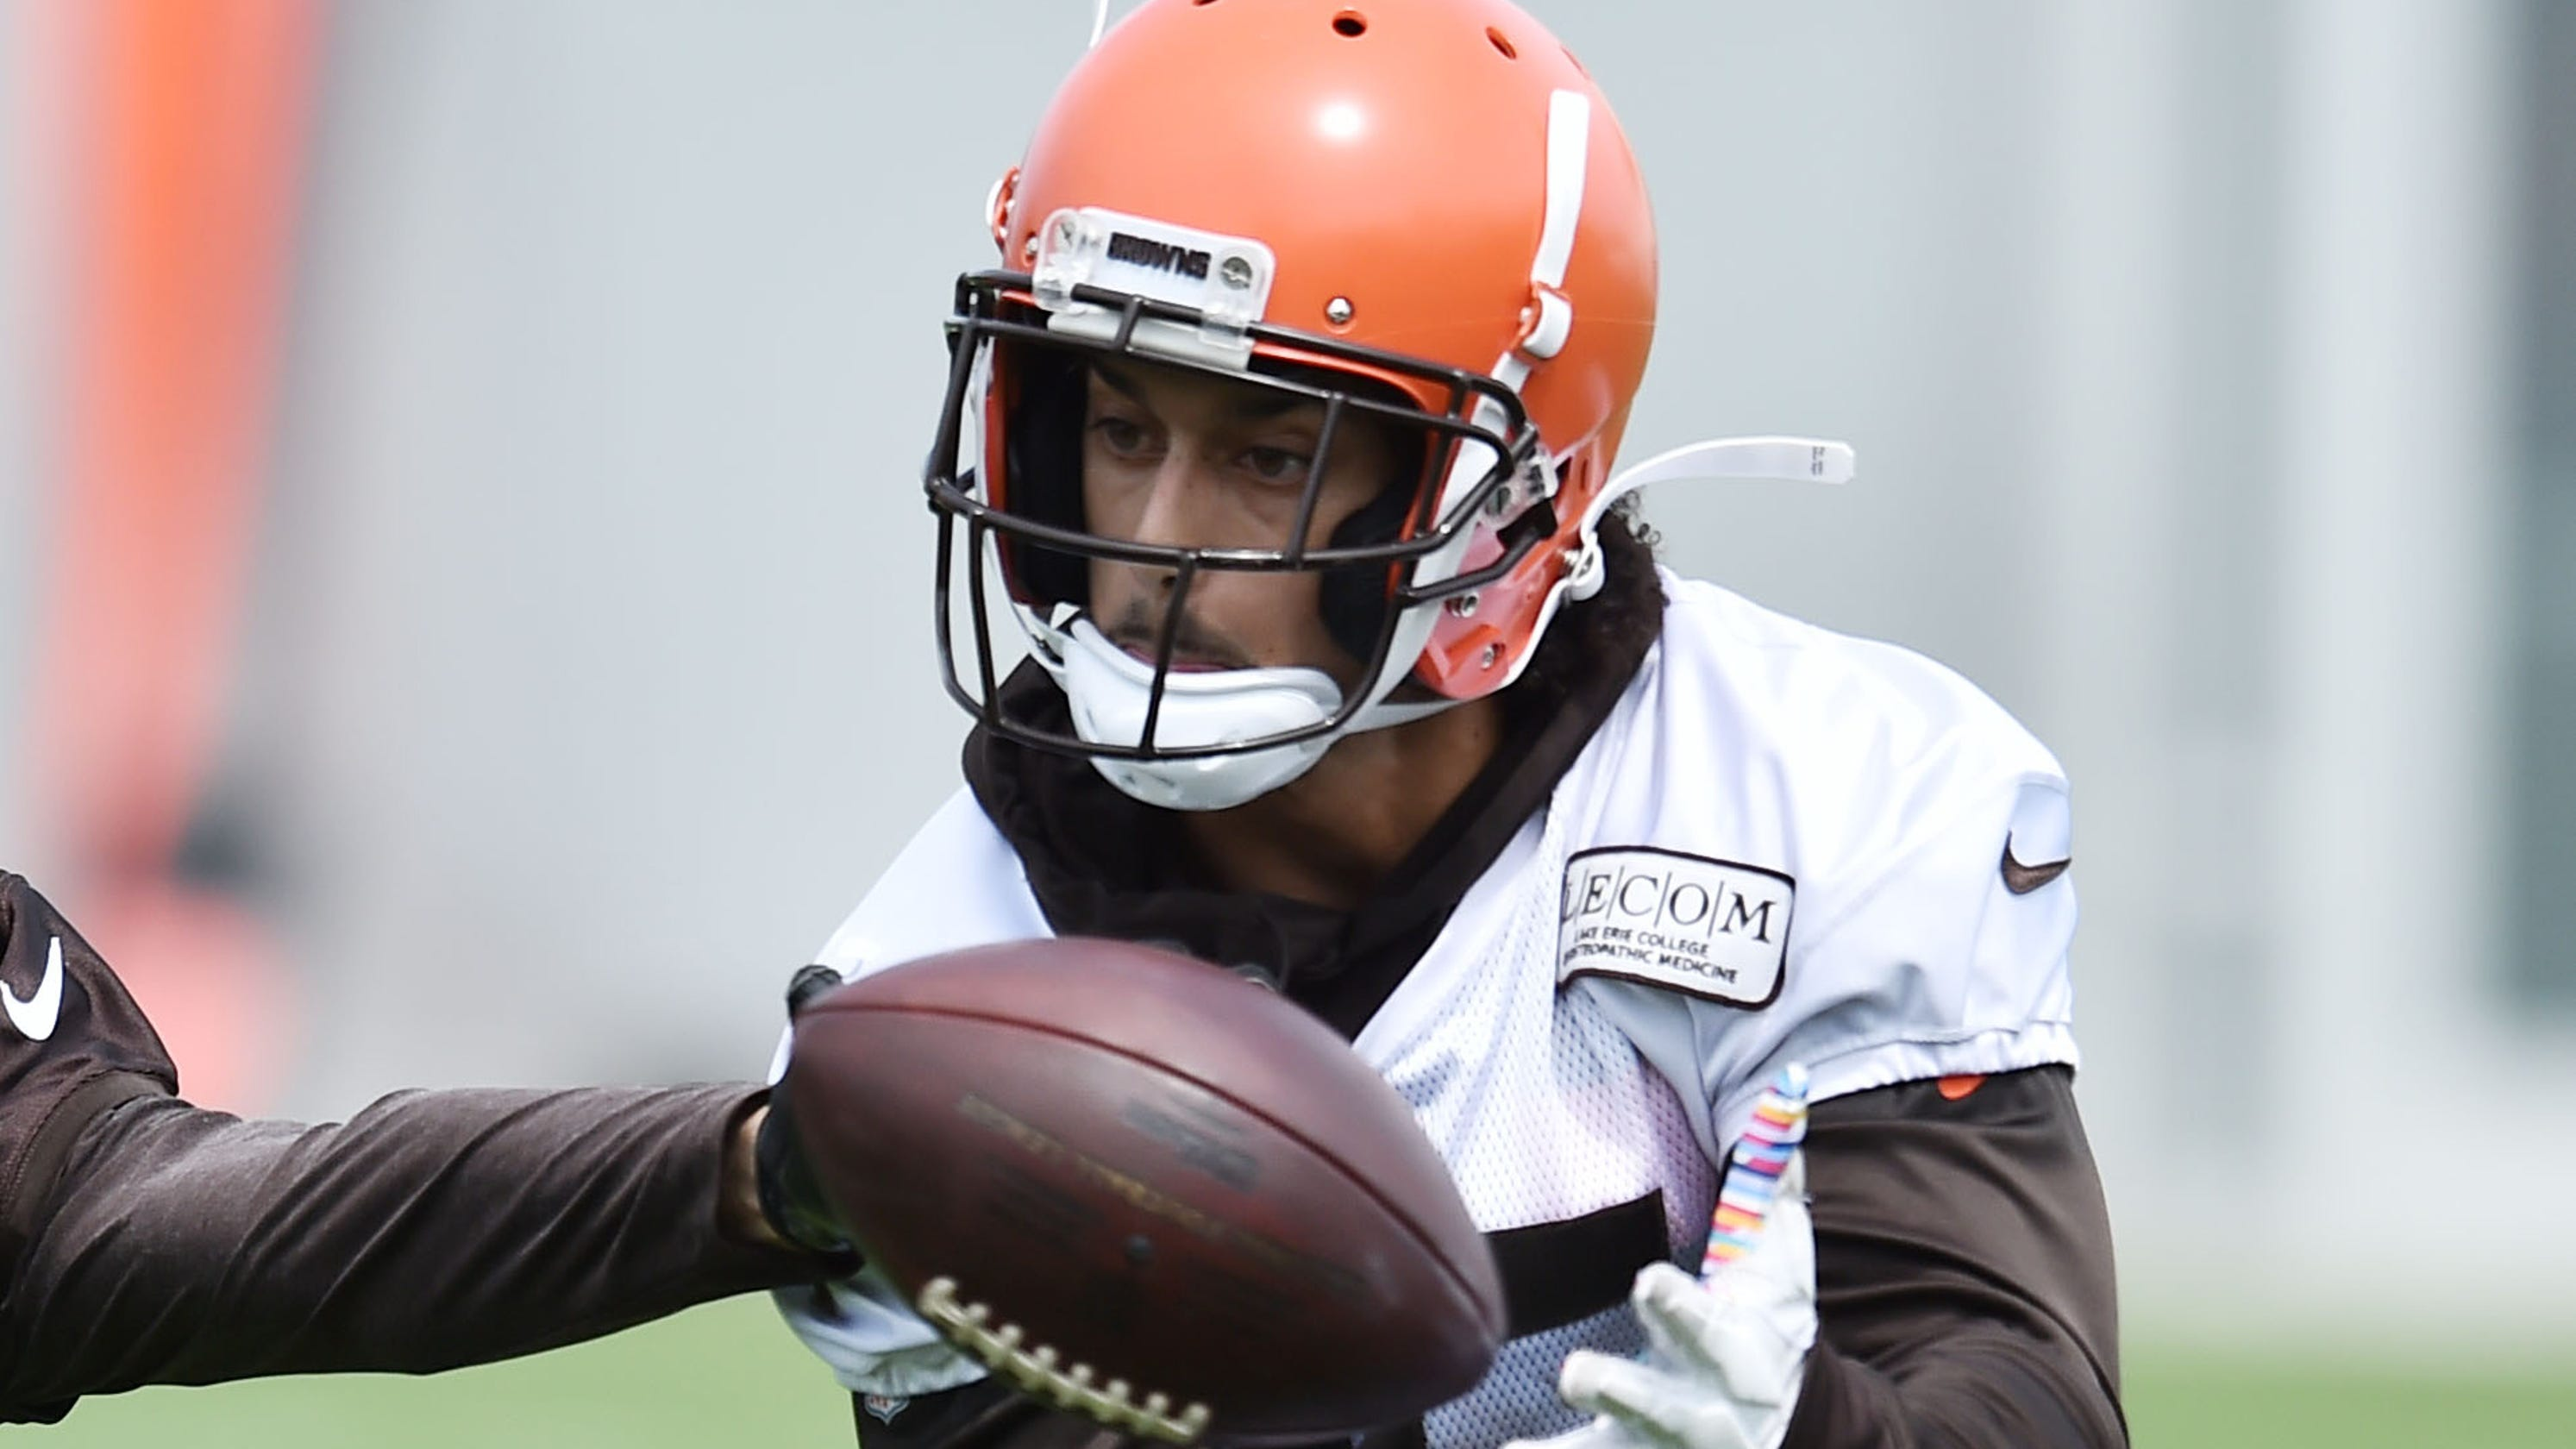 NFL: Cleveland Browns WR Damon Sheehy-Guiseppi Lied To Get